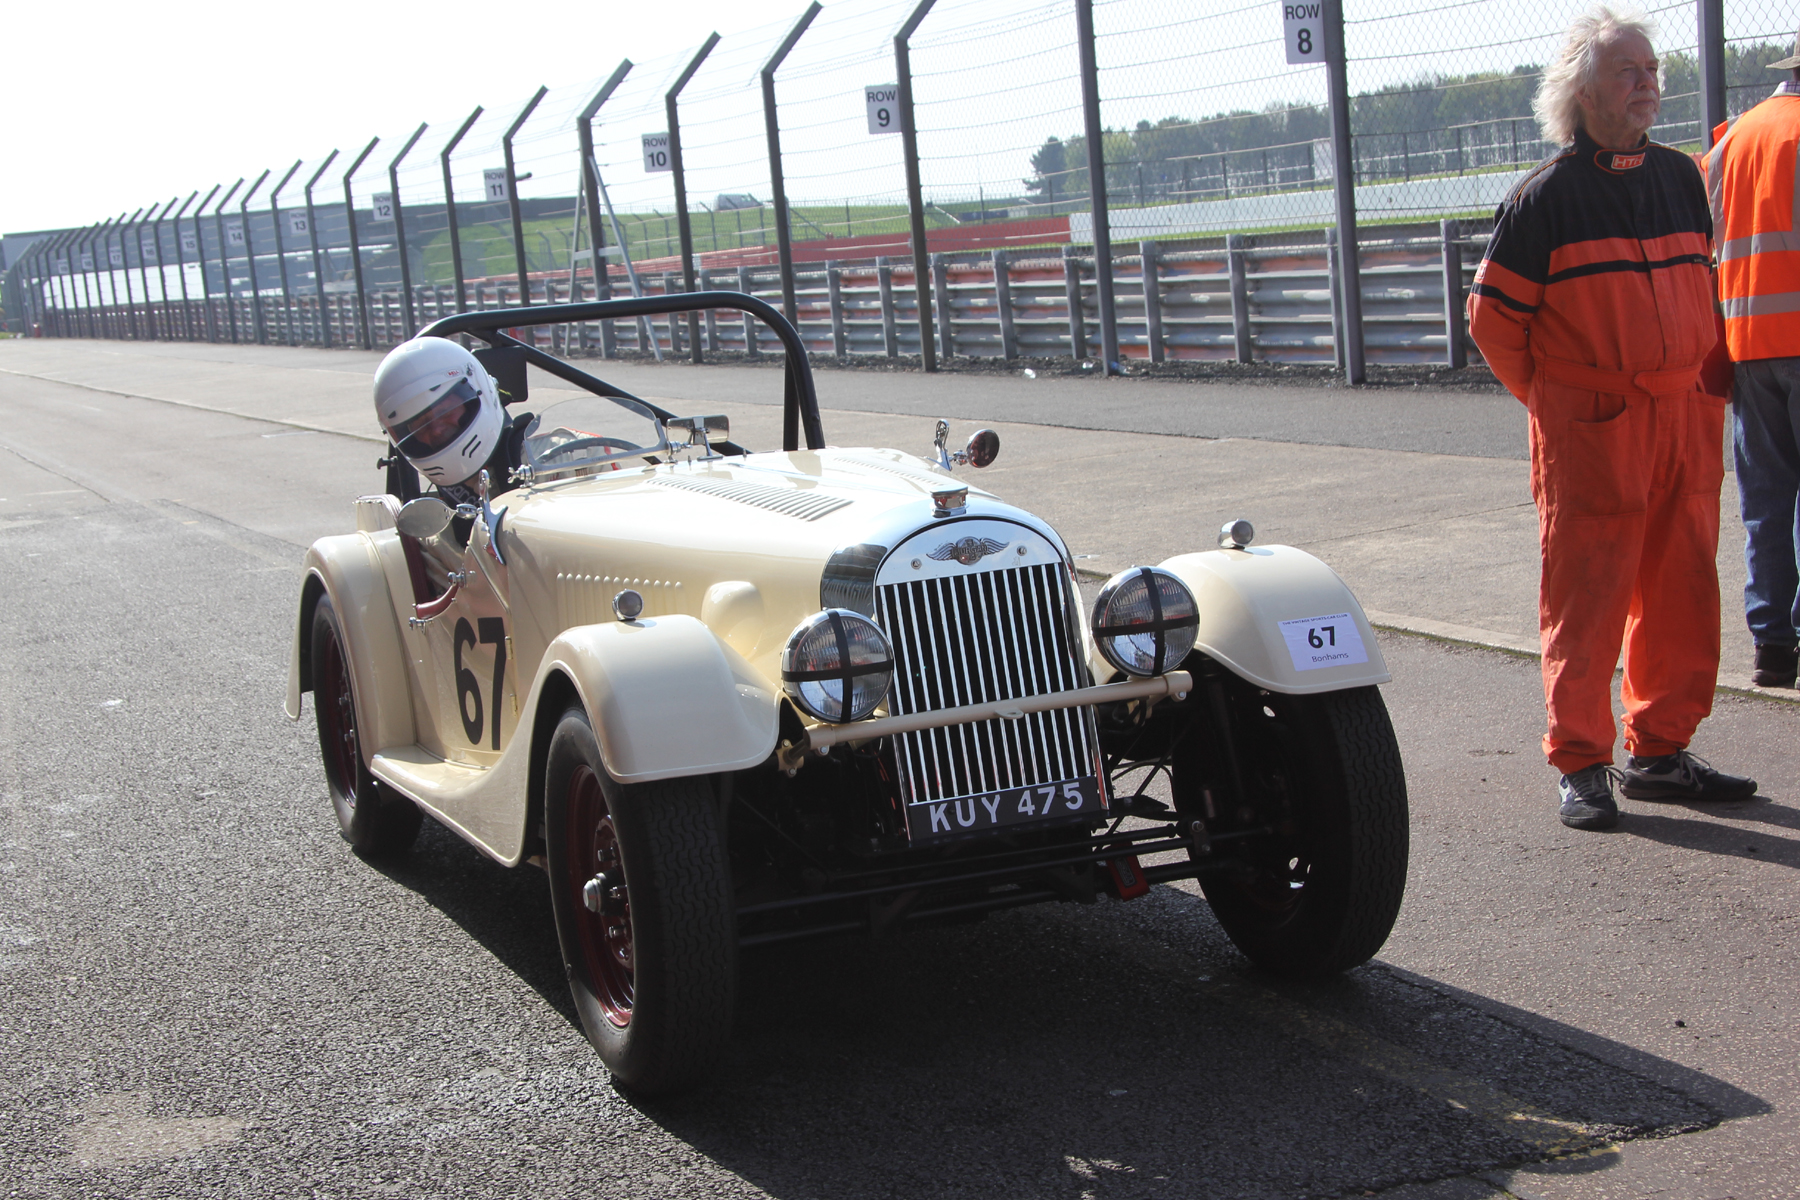 Newcomer, Mark Shears in the Flat Rad Morgan  +4 lines up for qualifying.                                       Photo - Pat Arculus, Tripos Media